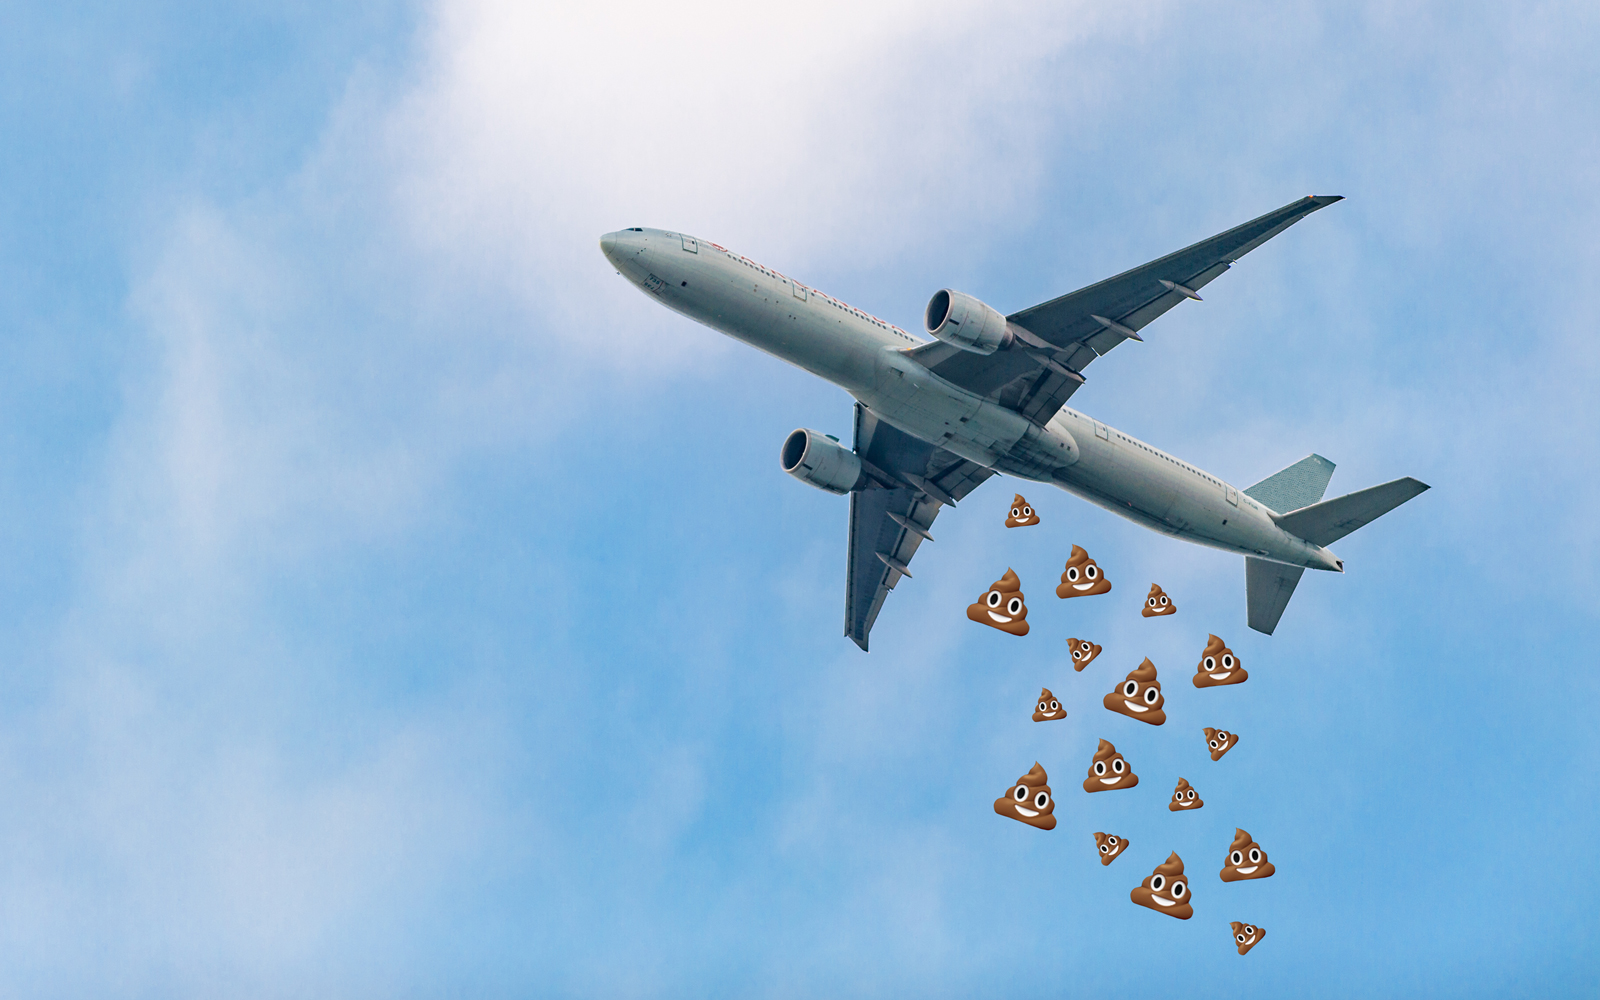 Airplane in the air with Poop Emojis